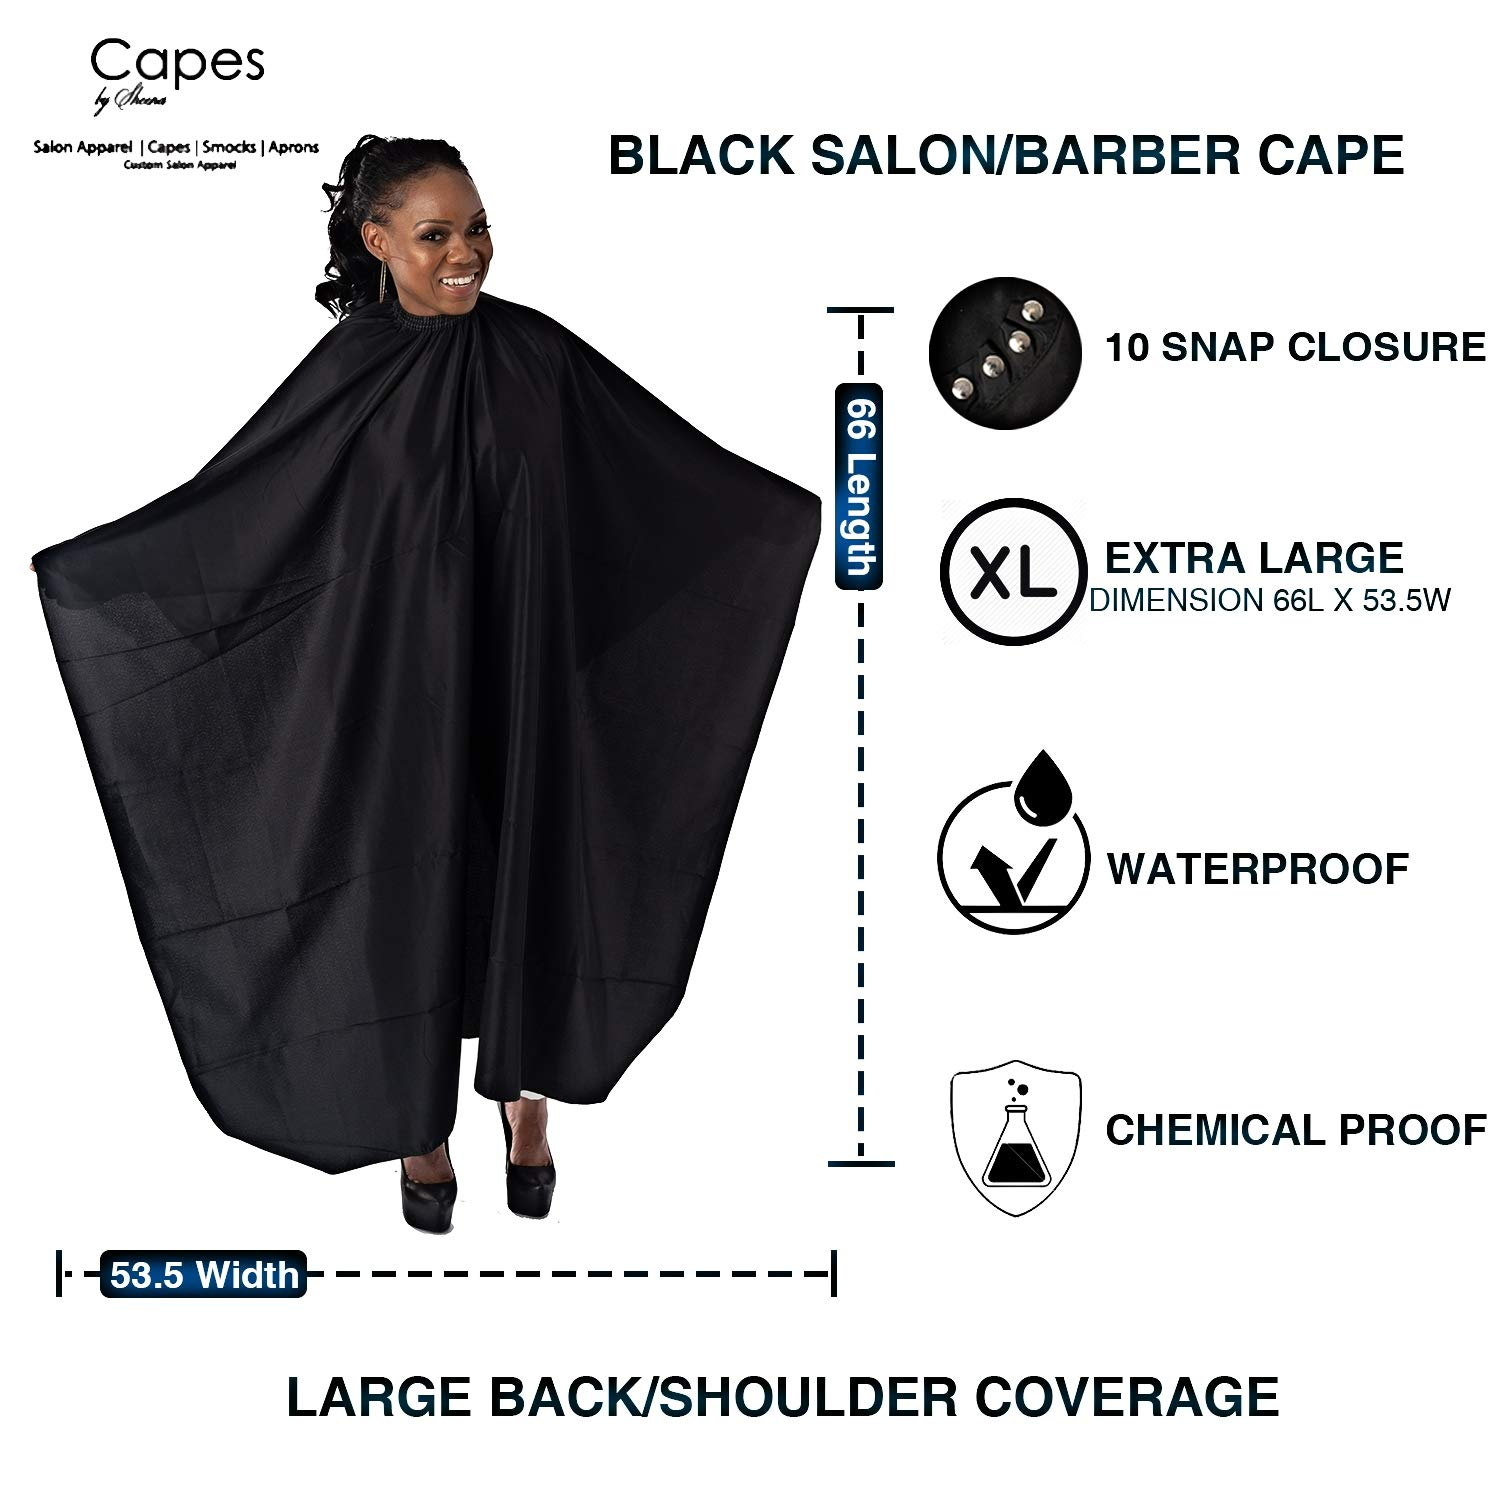 Capes By Sheena Black Hairdresser Barber Cape W/ 10 Snap Closure, X Large 66'' L x 53.5'' Stylist Supplies for Hair-Cutting by Capes By Sheena